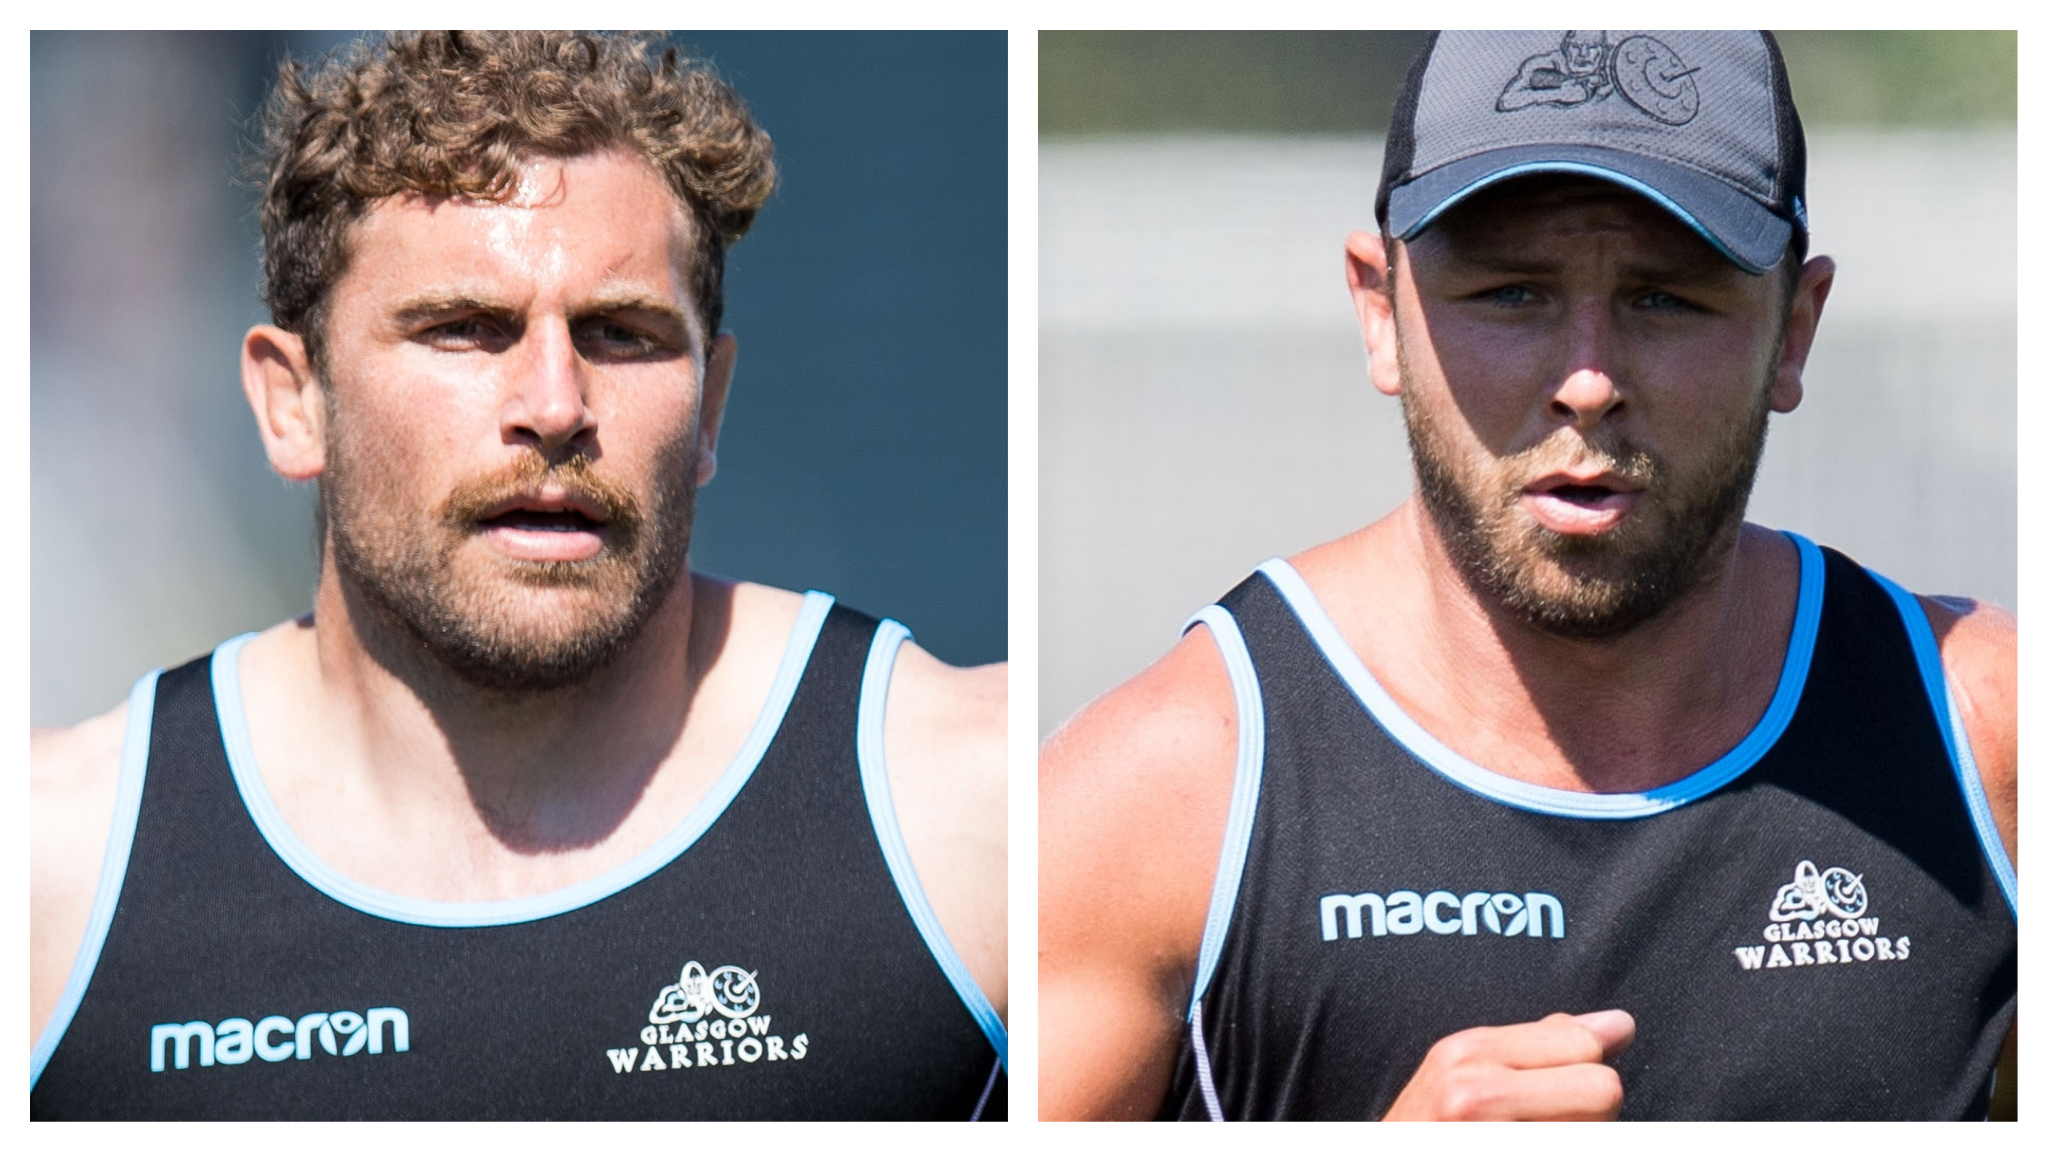 Glasgow Warriors name Callum Gibbins & Ryan Wilson co-captains